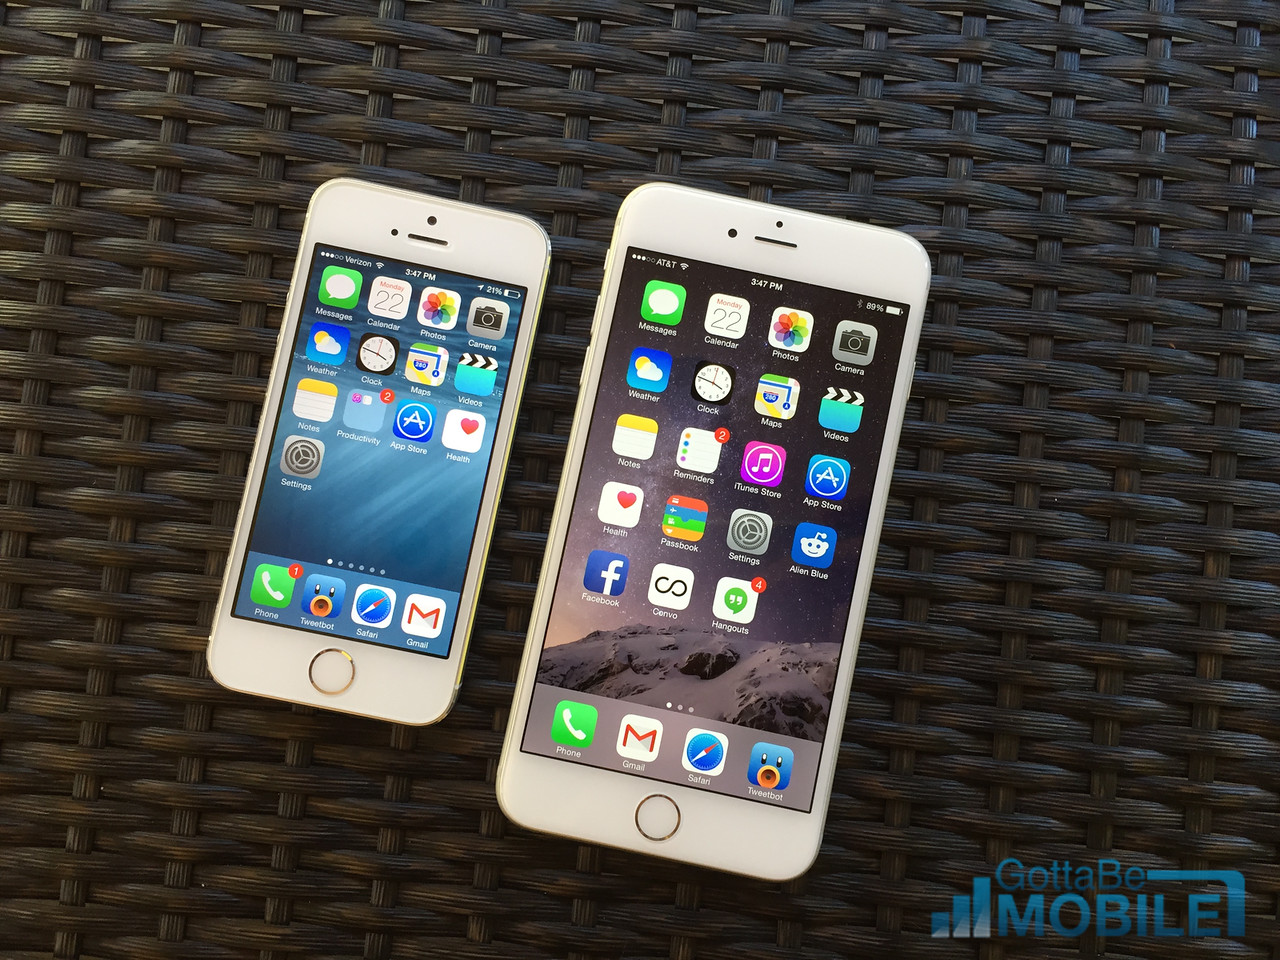 iOS 8.1: 5 Things iPhone 5s Users Need to Know